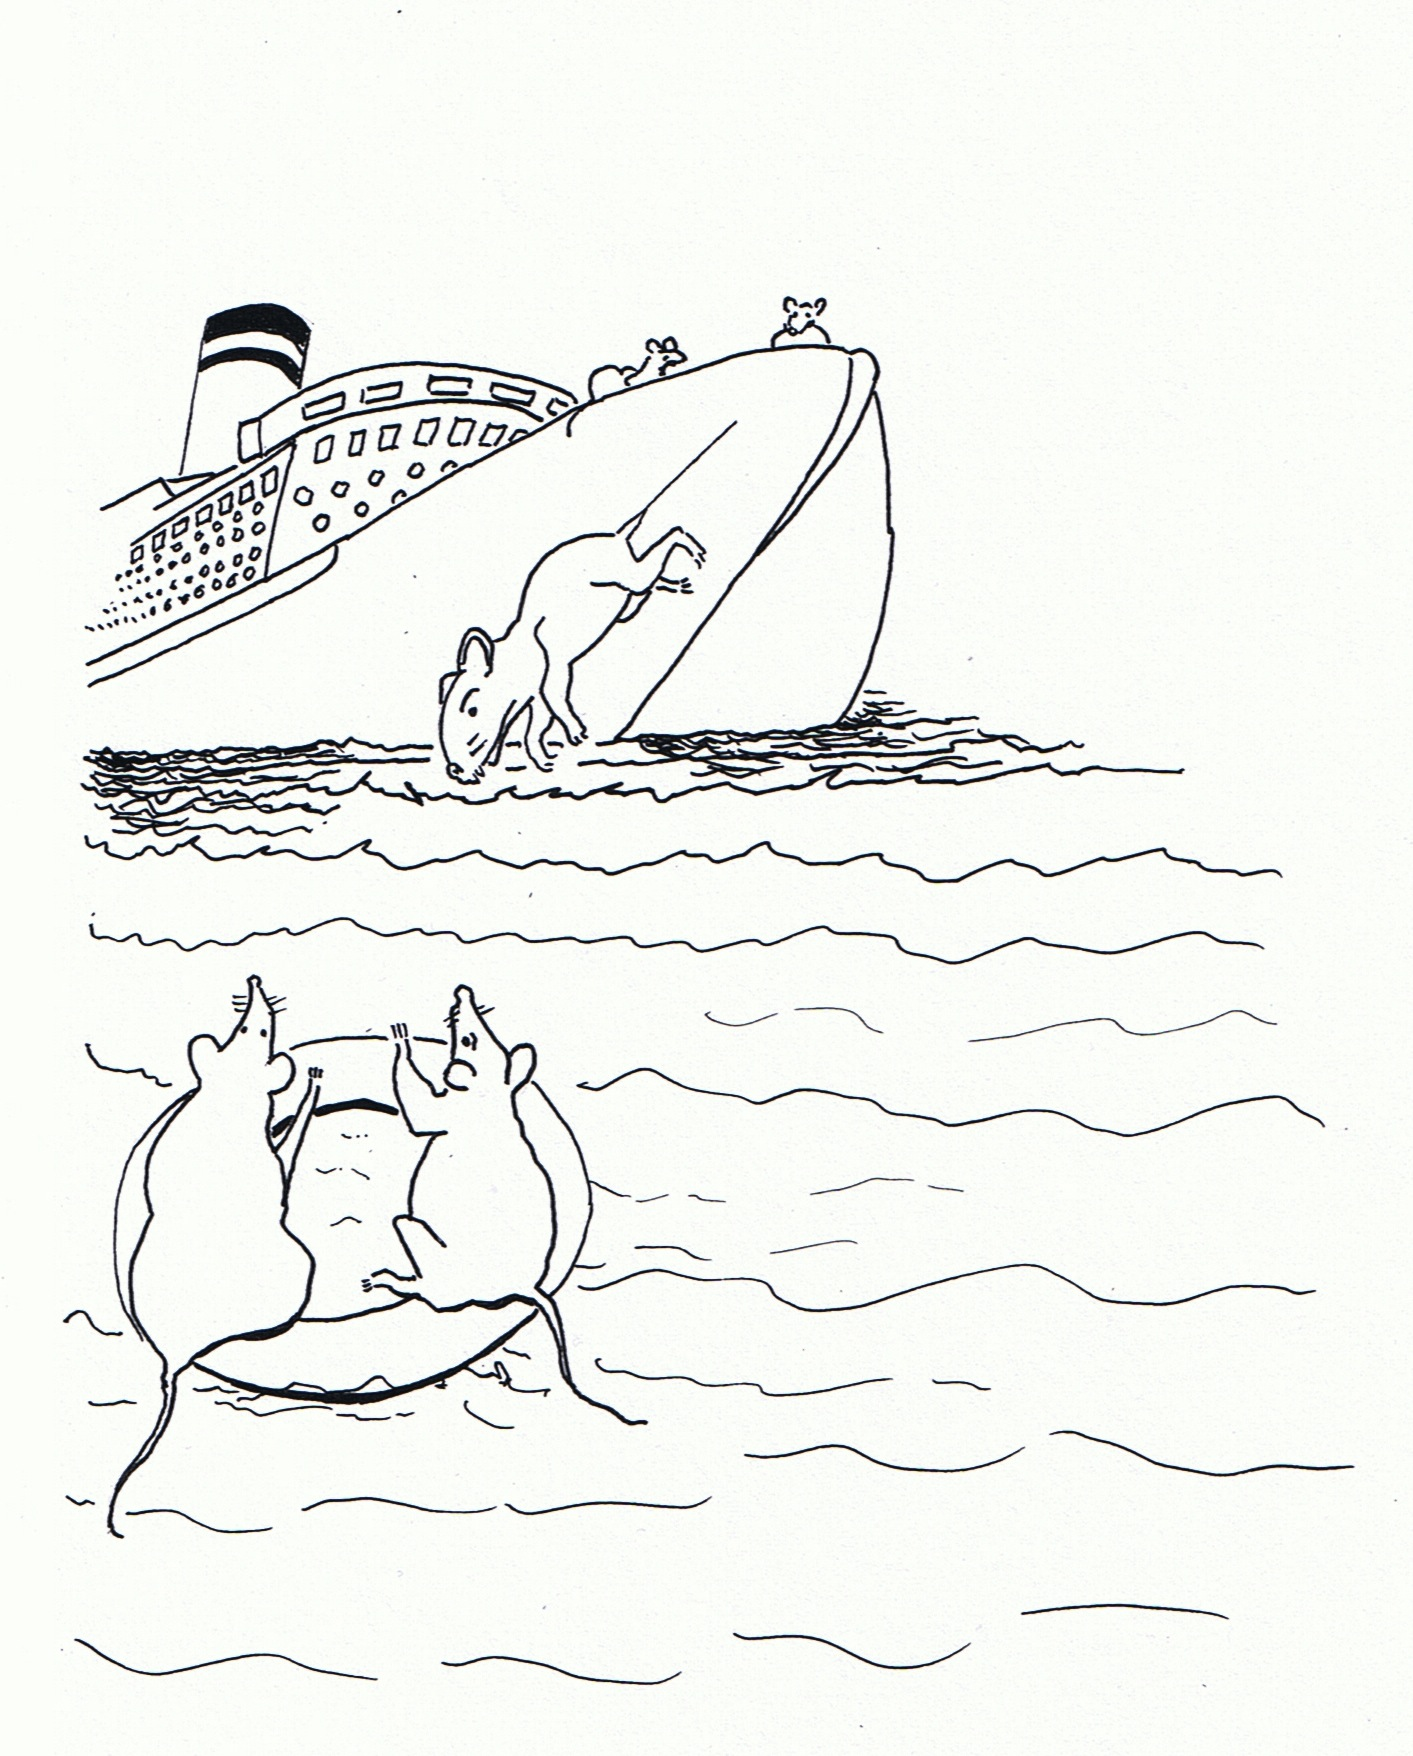 Drawn shoe rat Are Sinking a are and